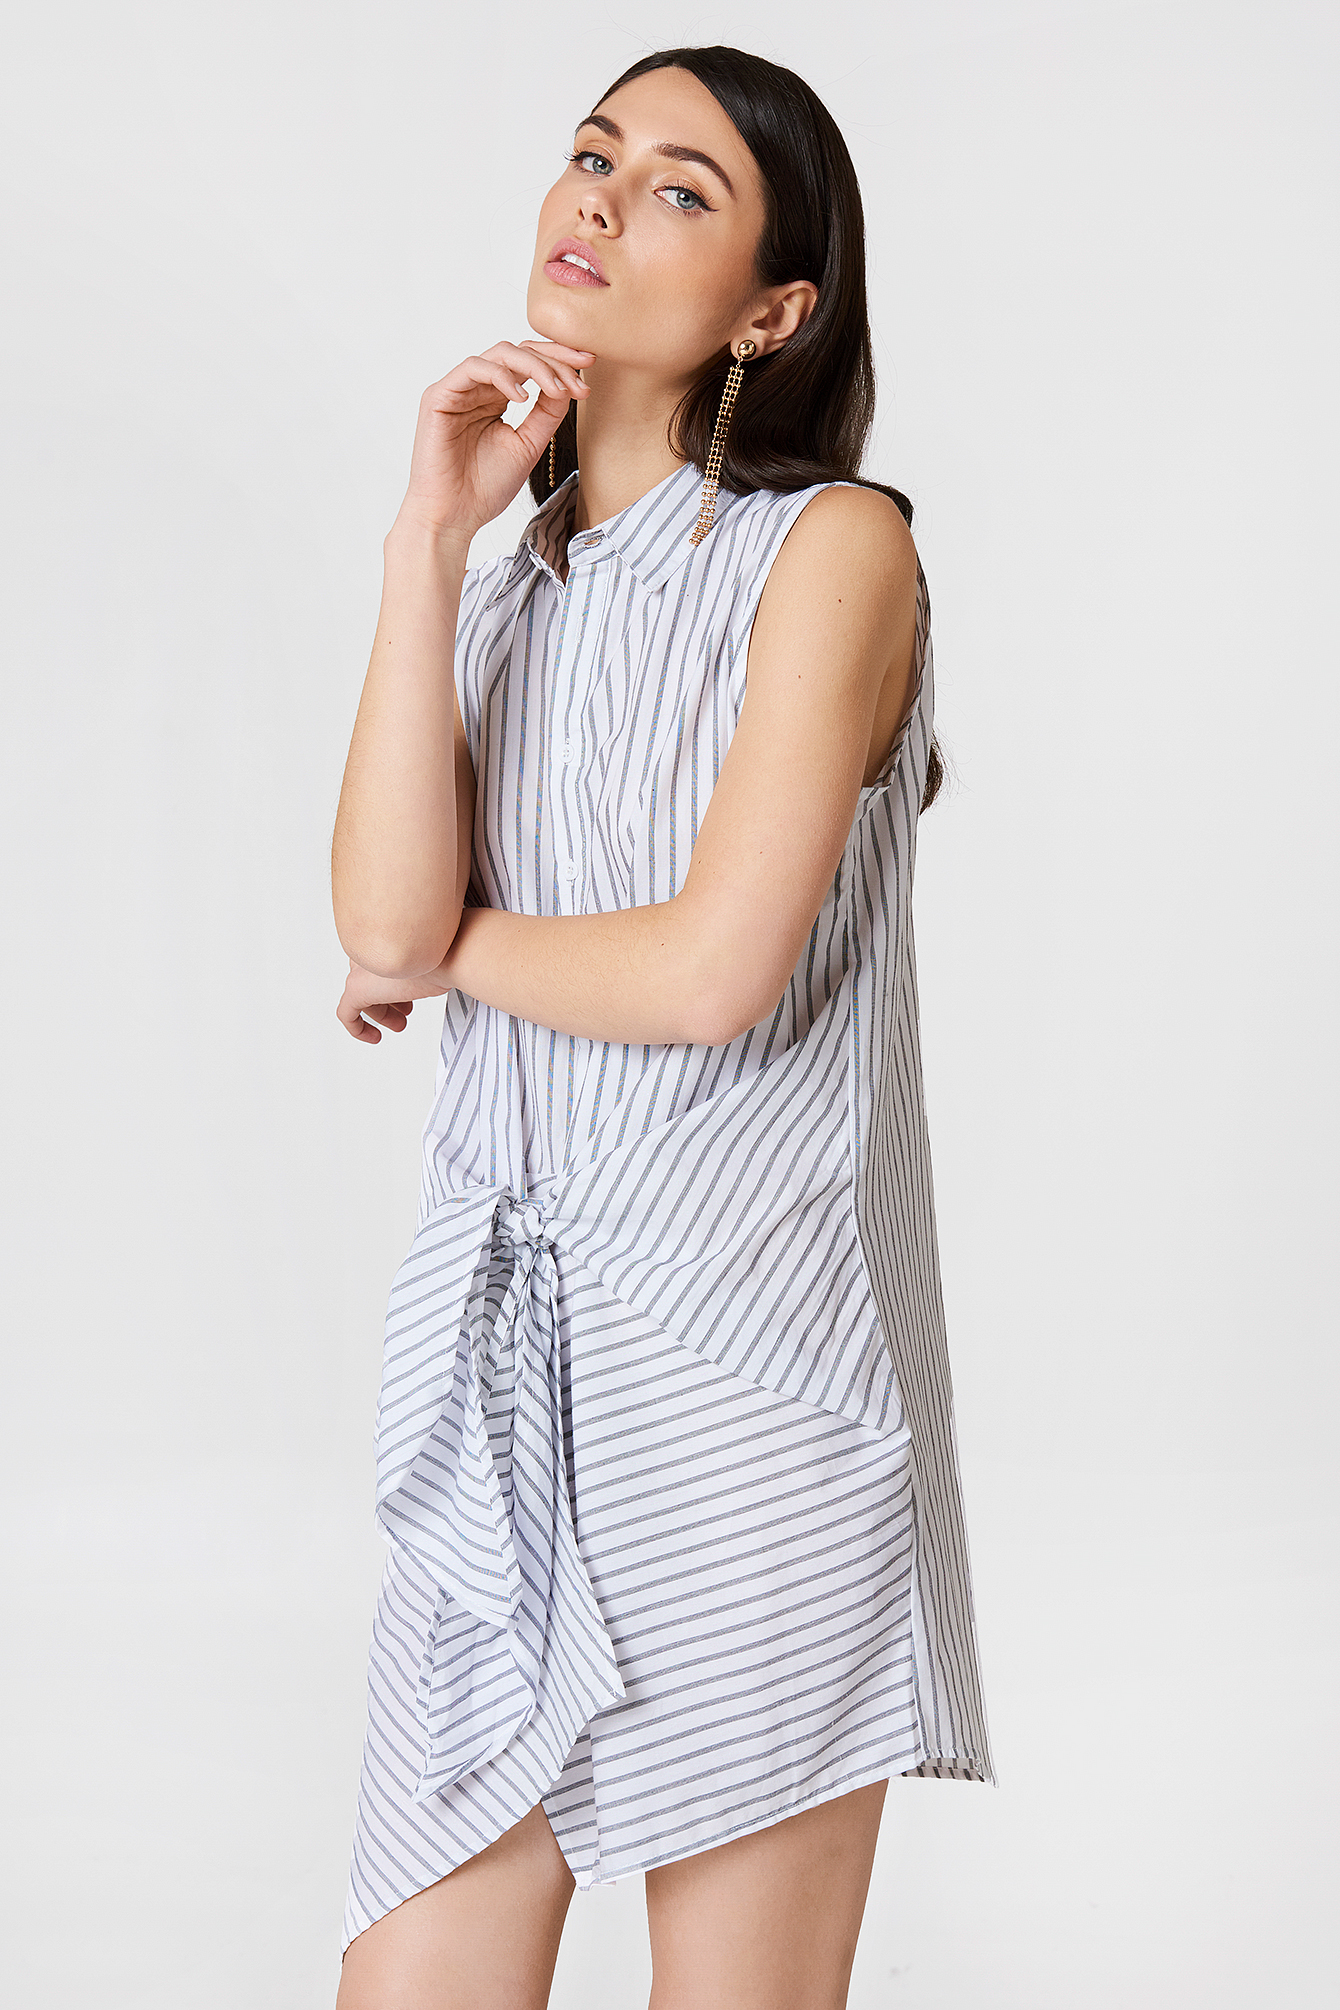 REVERSE WHEN WE WERE YOUNG DRESS - WHITE, MULTICOLOR